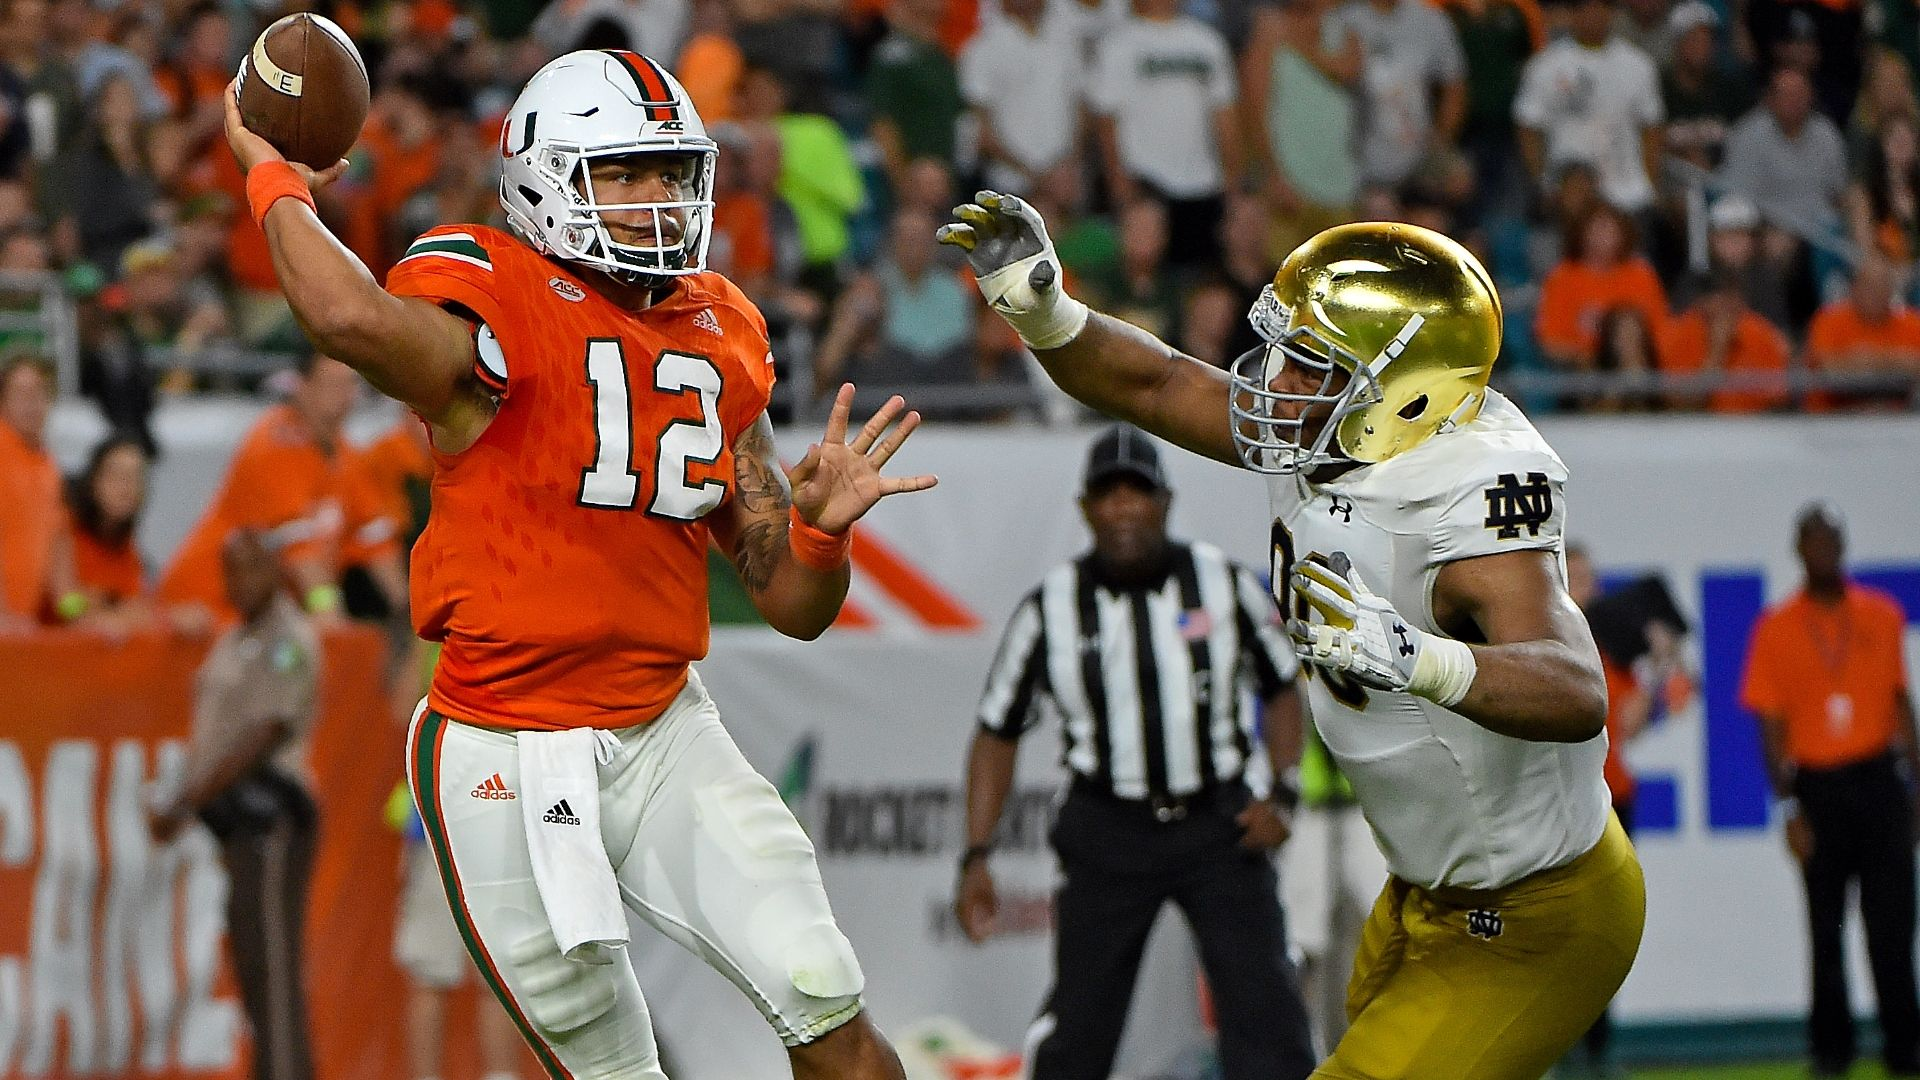 https://secure.espncdn.com/combiner/i?img=/media/motion/2017/1112/dm_171112_NCF_Miami_Notre_Dame_Highlight/dm_171112_NCF_Miami_Notre_Dame_Highlight.jpg